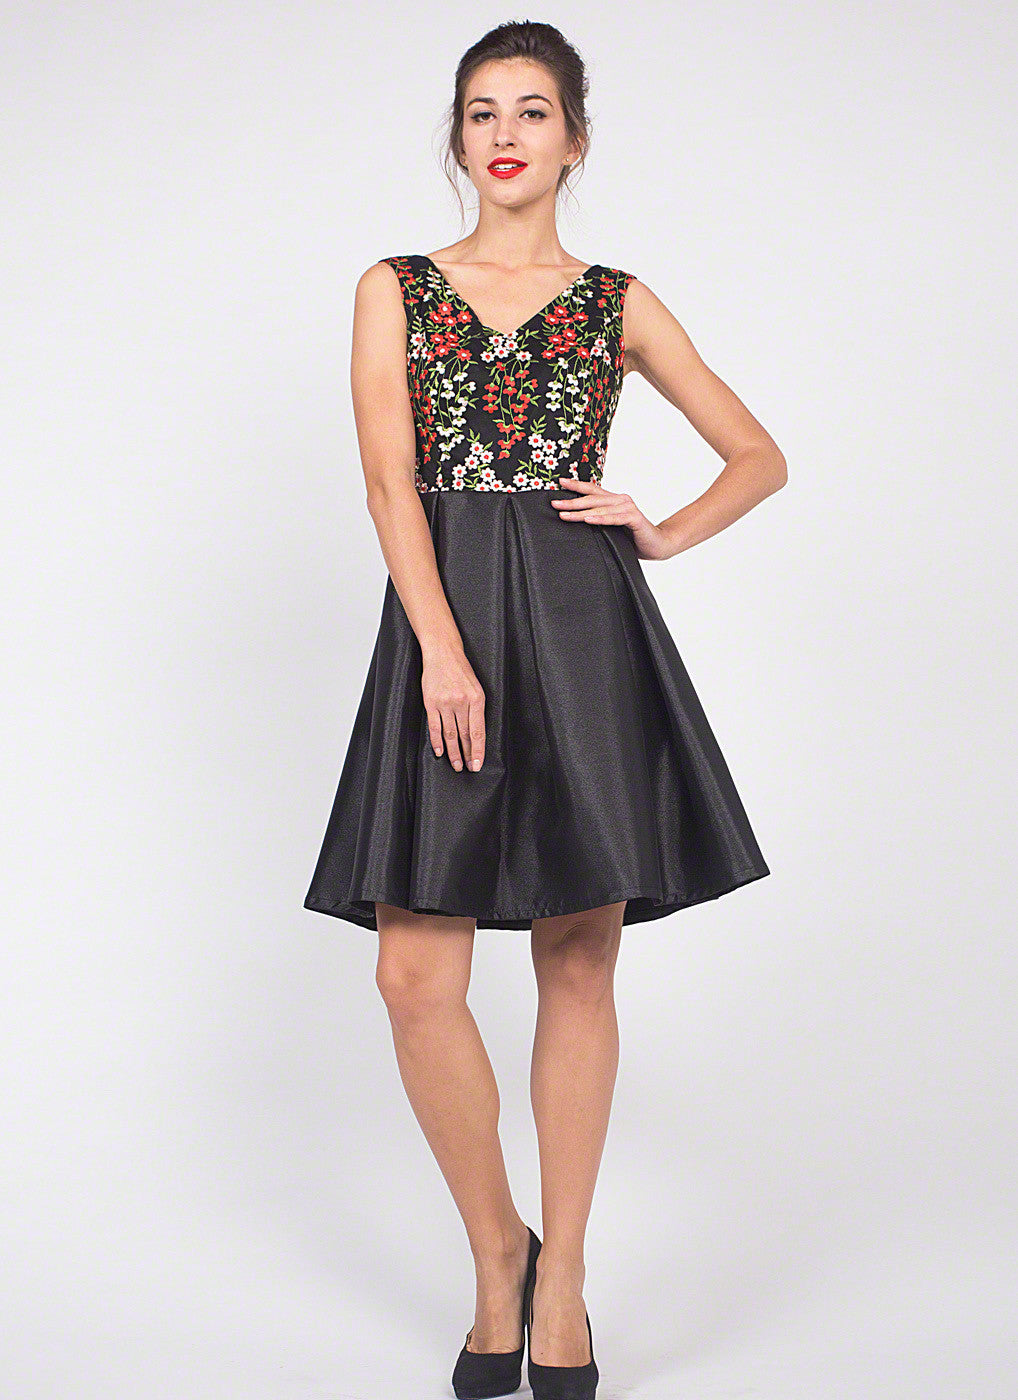 Black Tulle Mini Cocktail Dress with Red and White Floral Embroidery ...